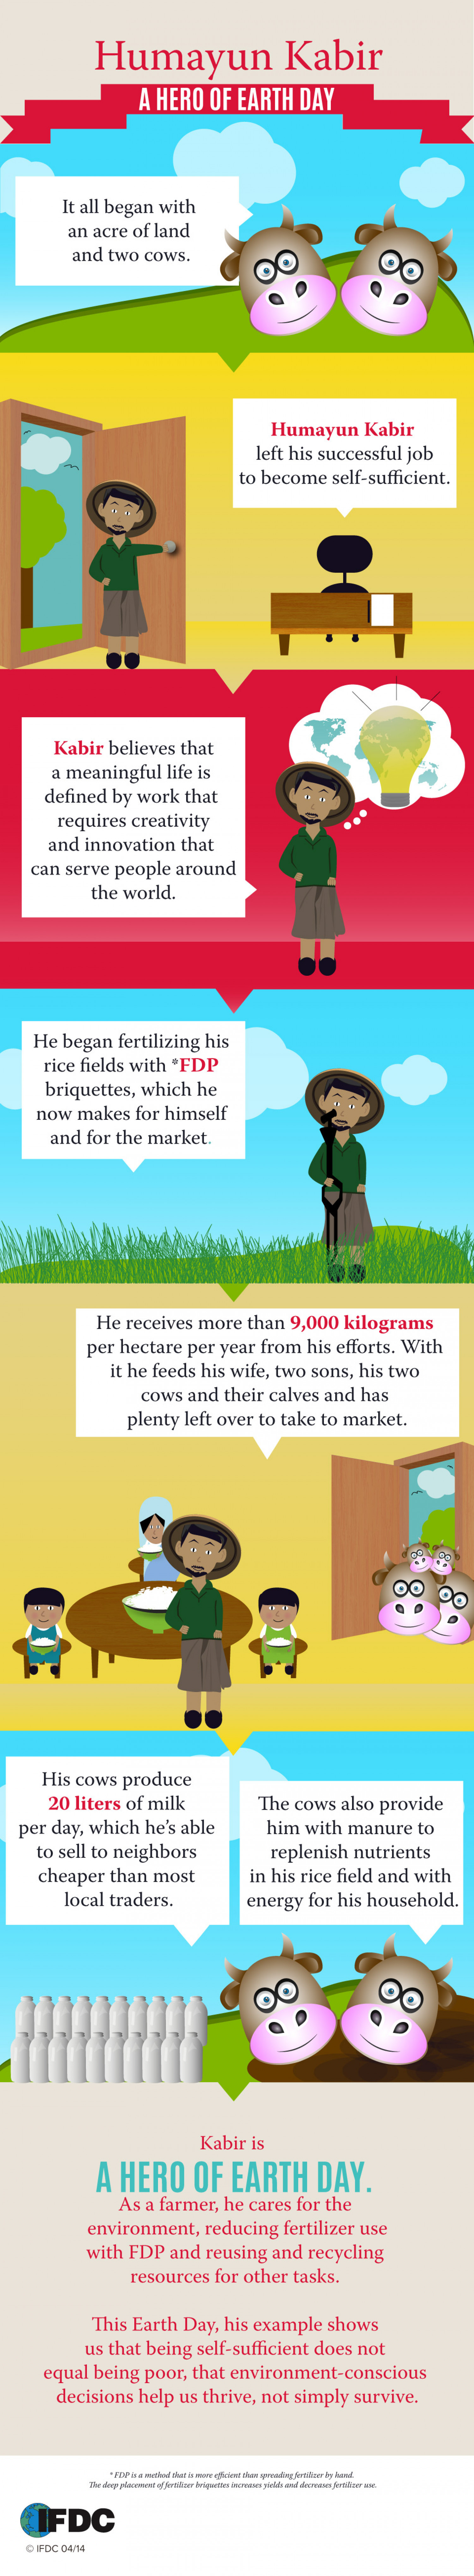 A Hero of Earth Day Infographic